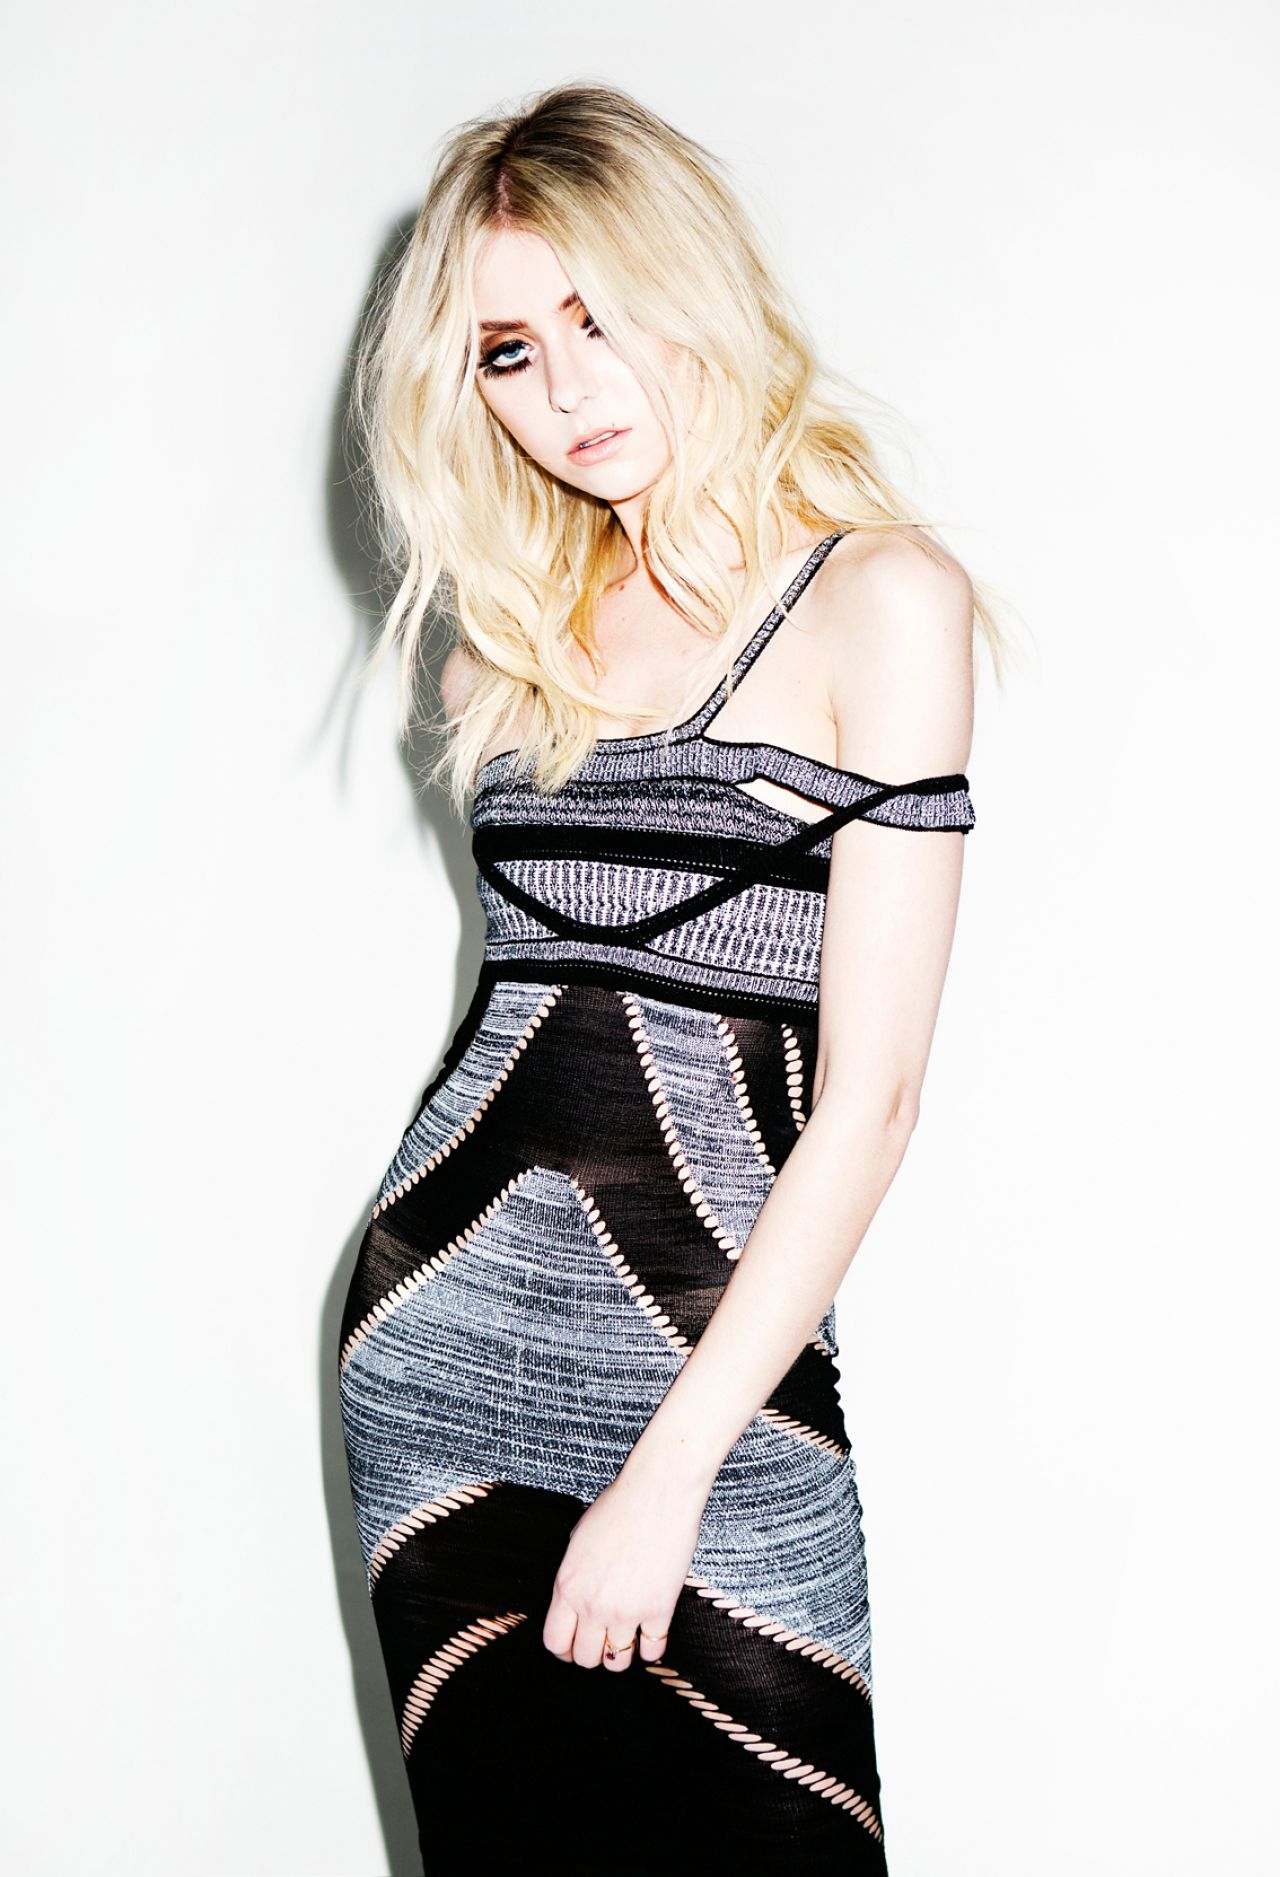 Taylor Momsen - Photoshoot for